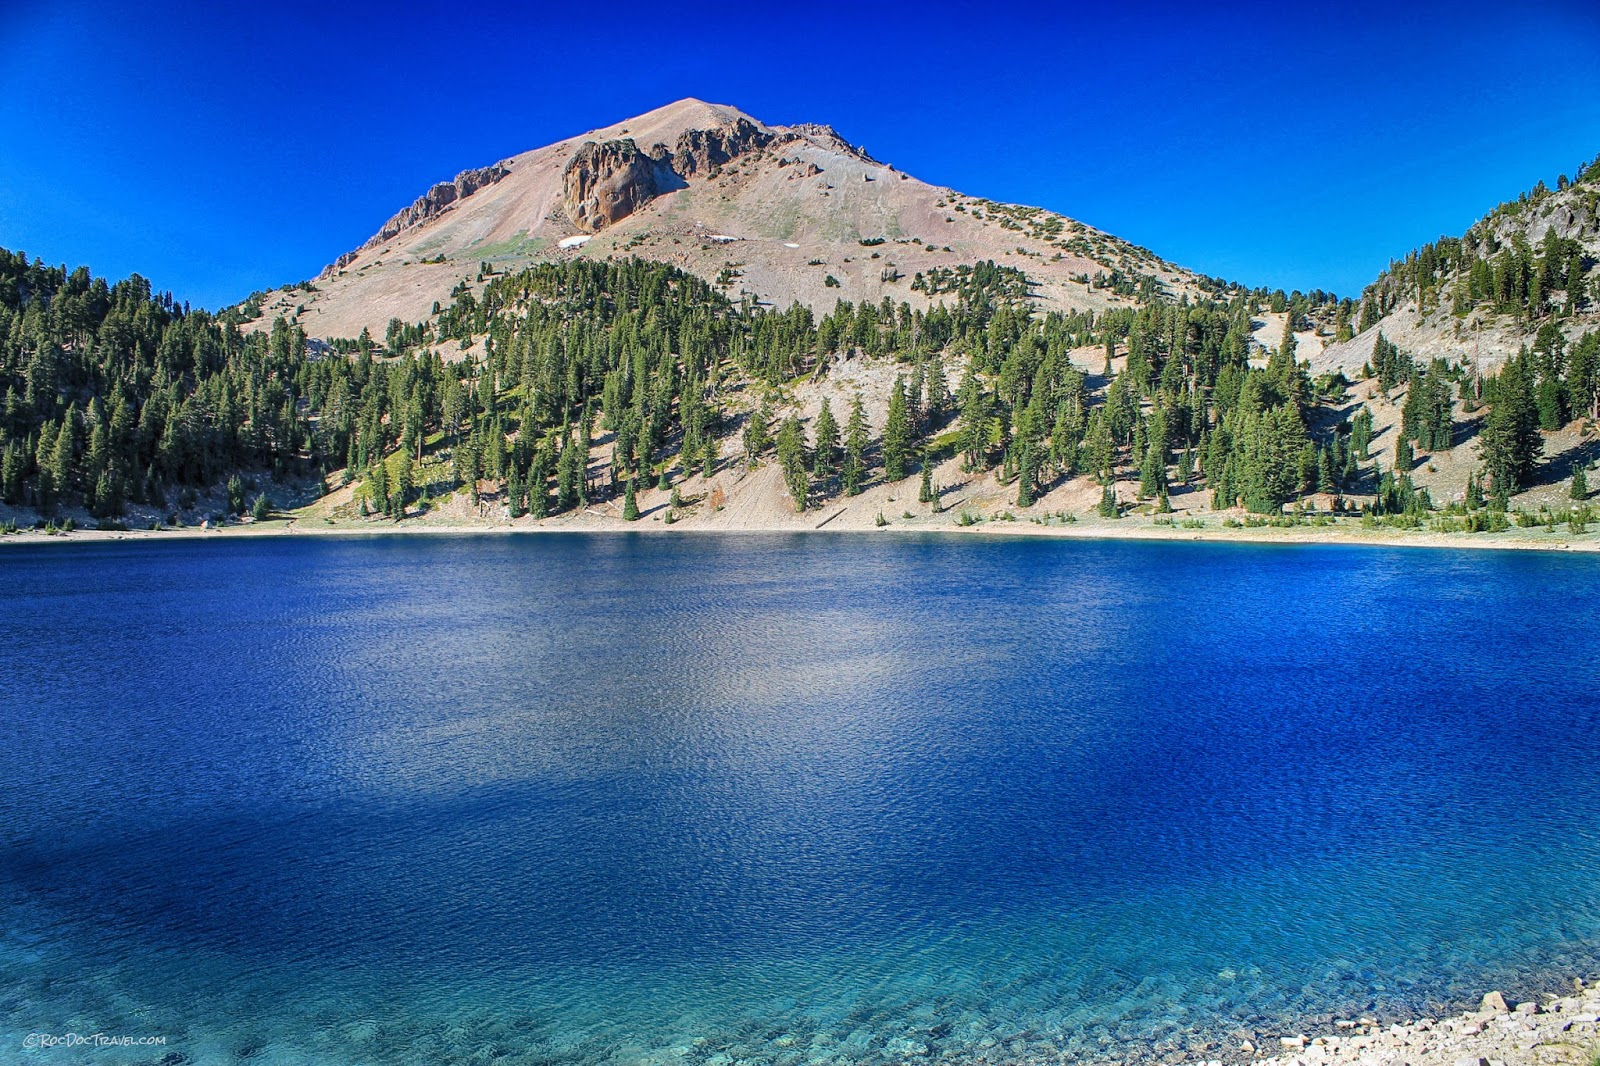 lassen volcanic national park roc doc travel. Black Bedroom Furniture Sets. Home Design Ideas